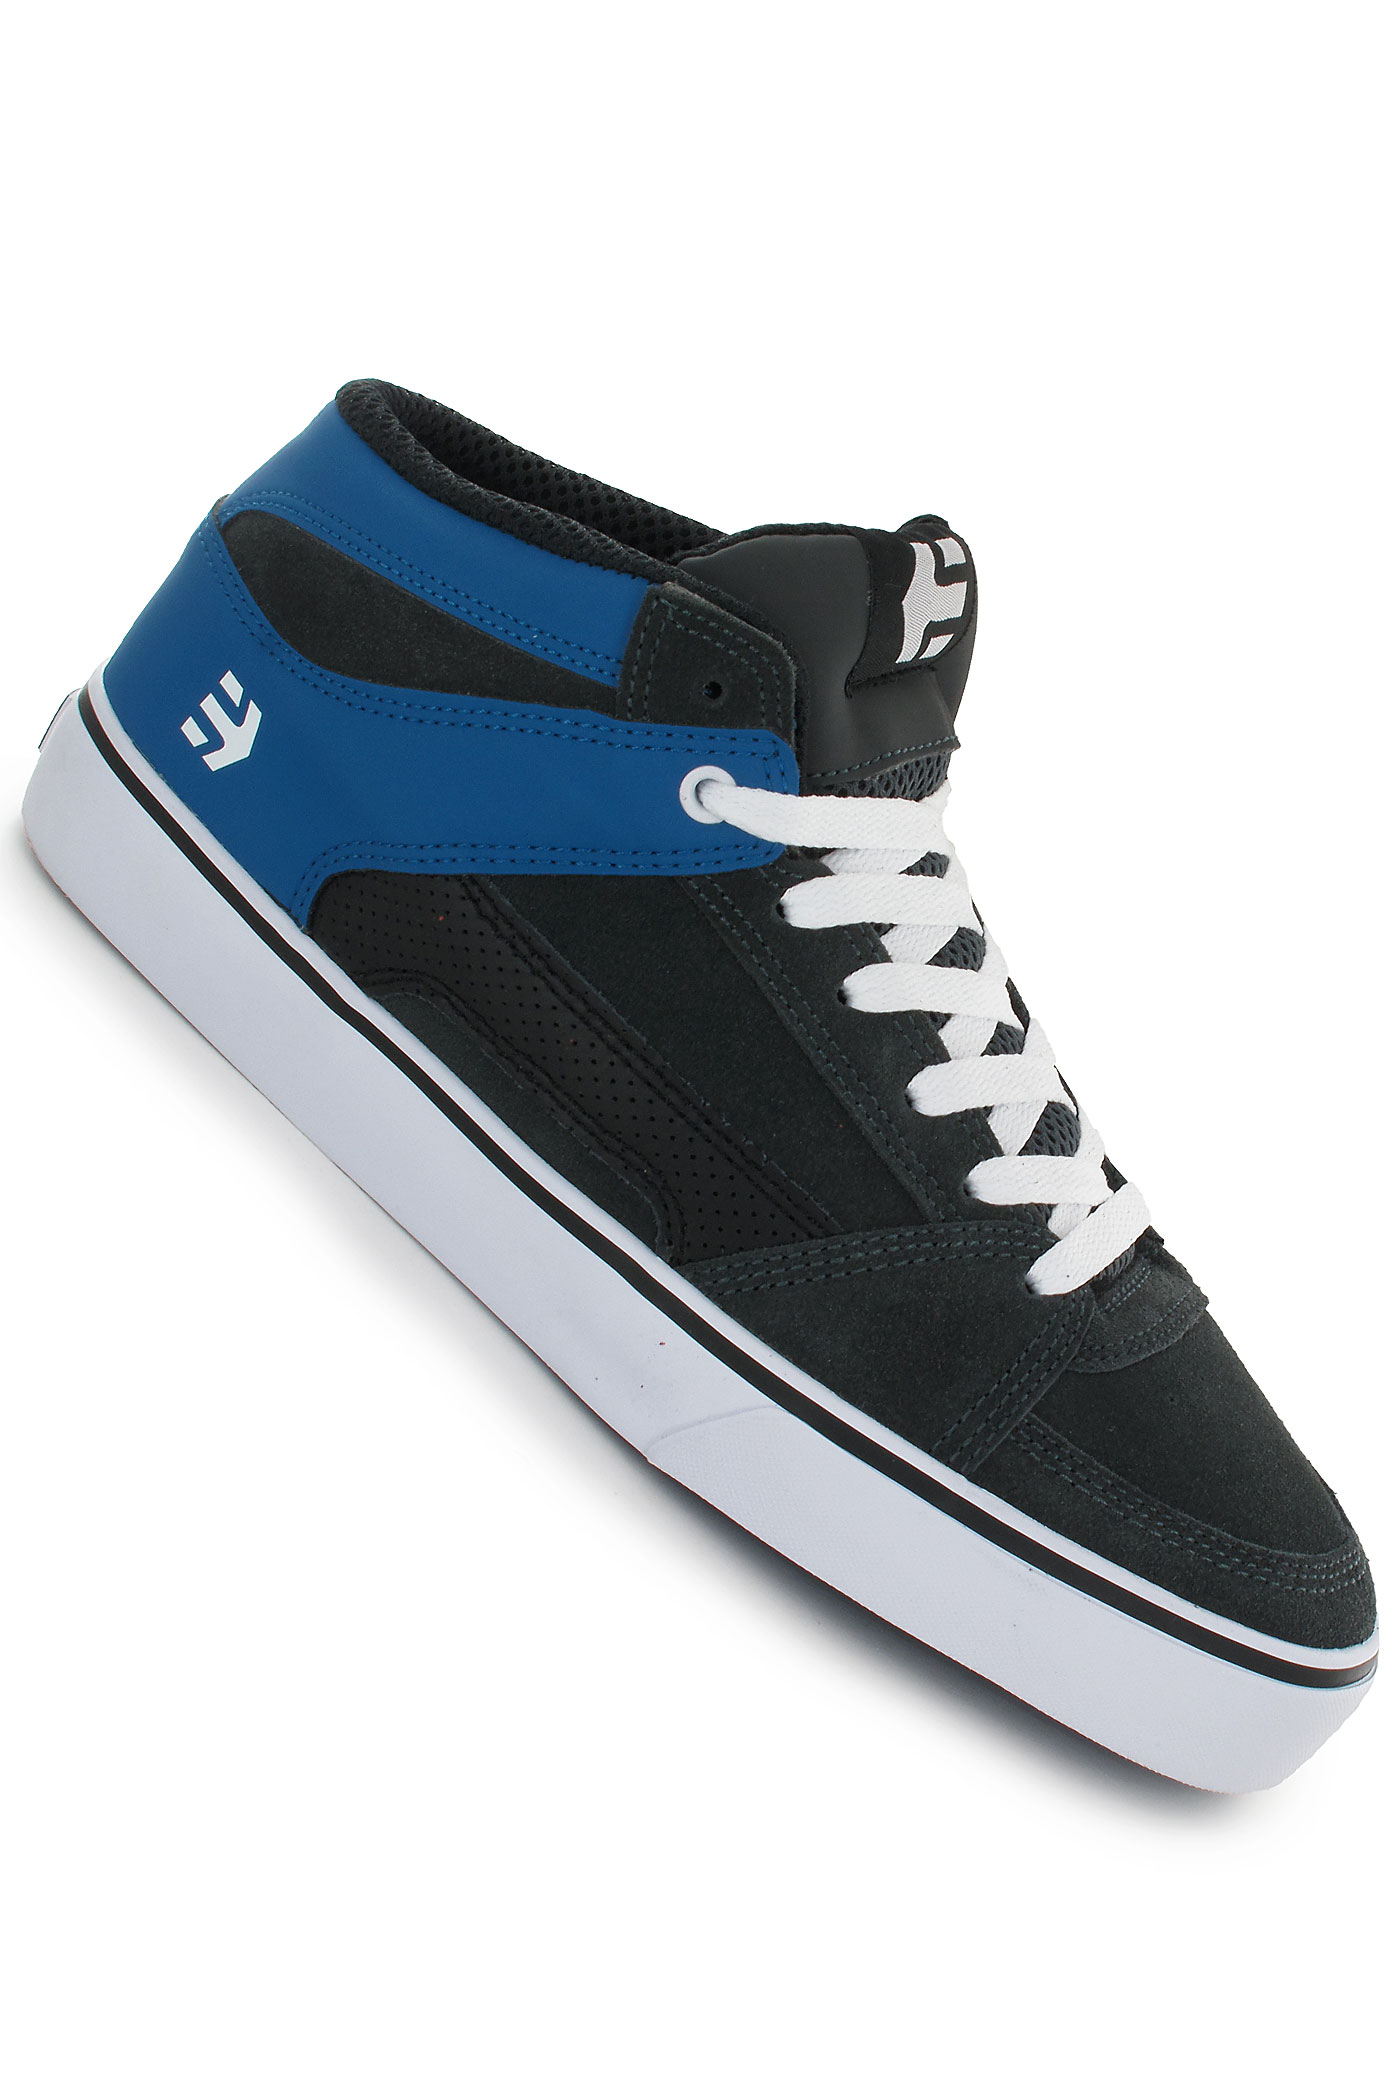 Etnies Rvm Blue Etnies Rvm Shoe Dark Grey